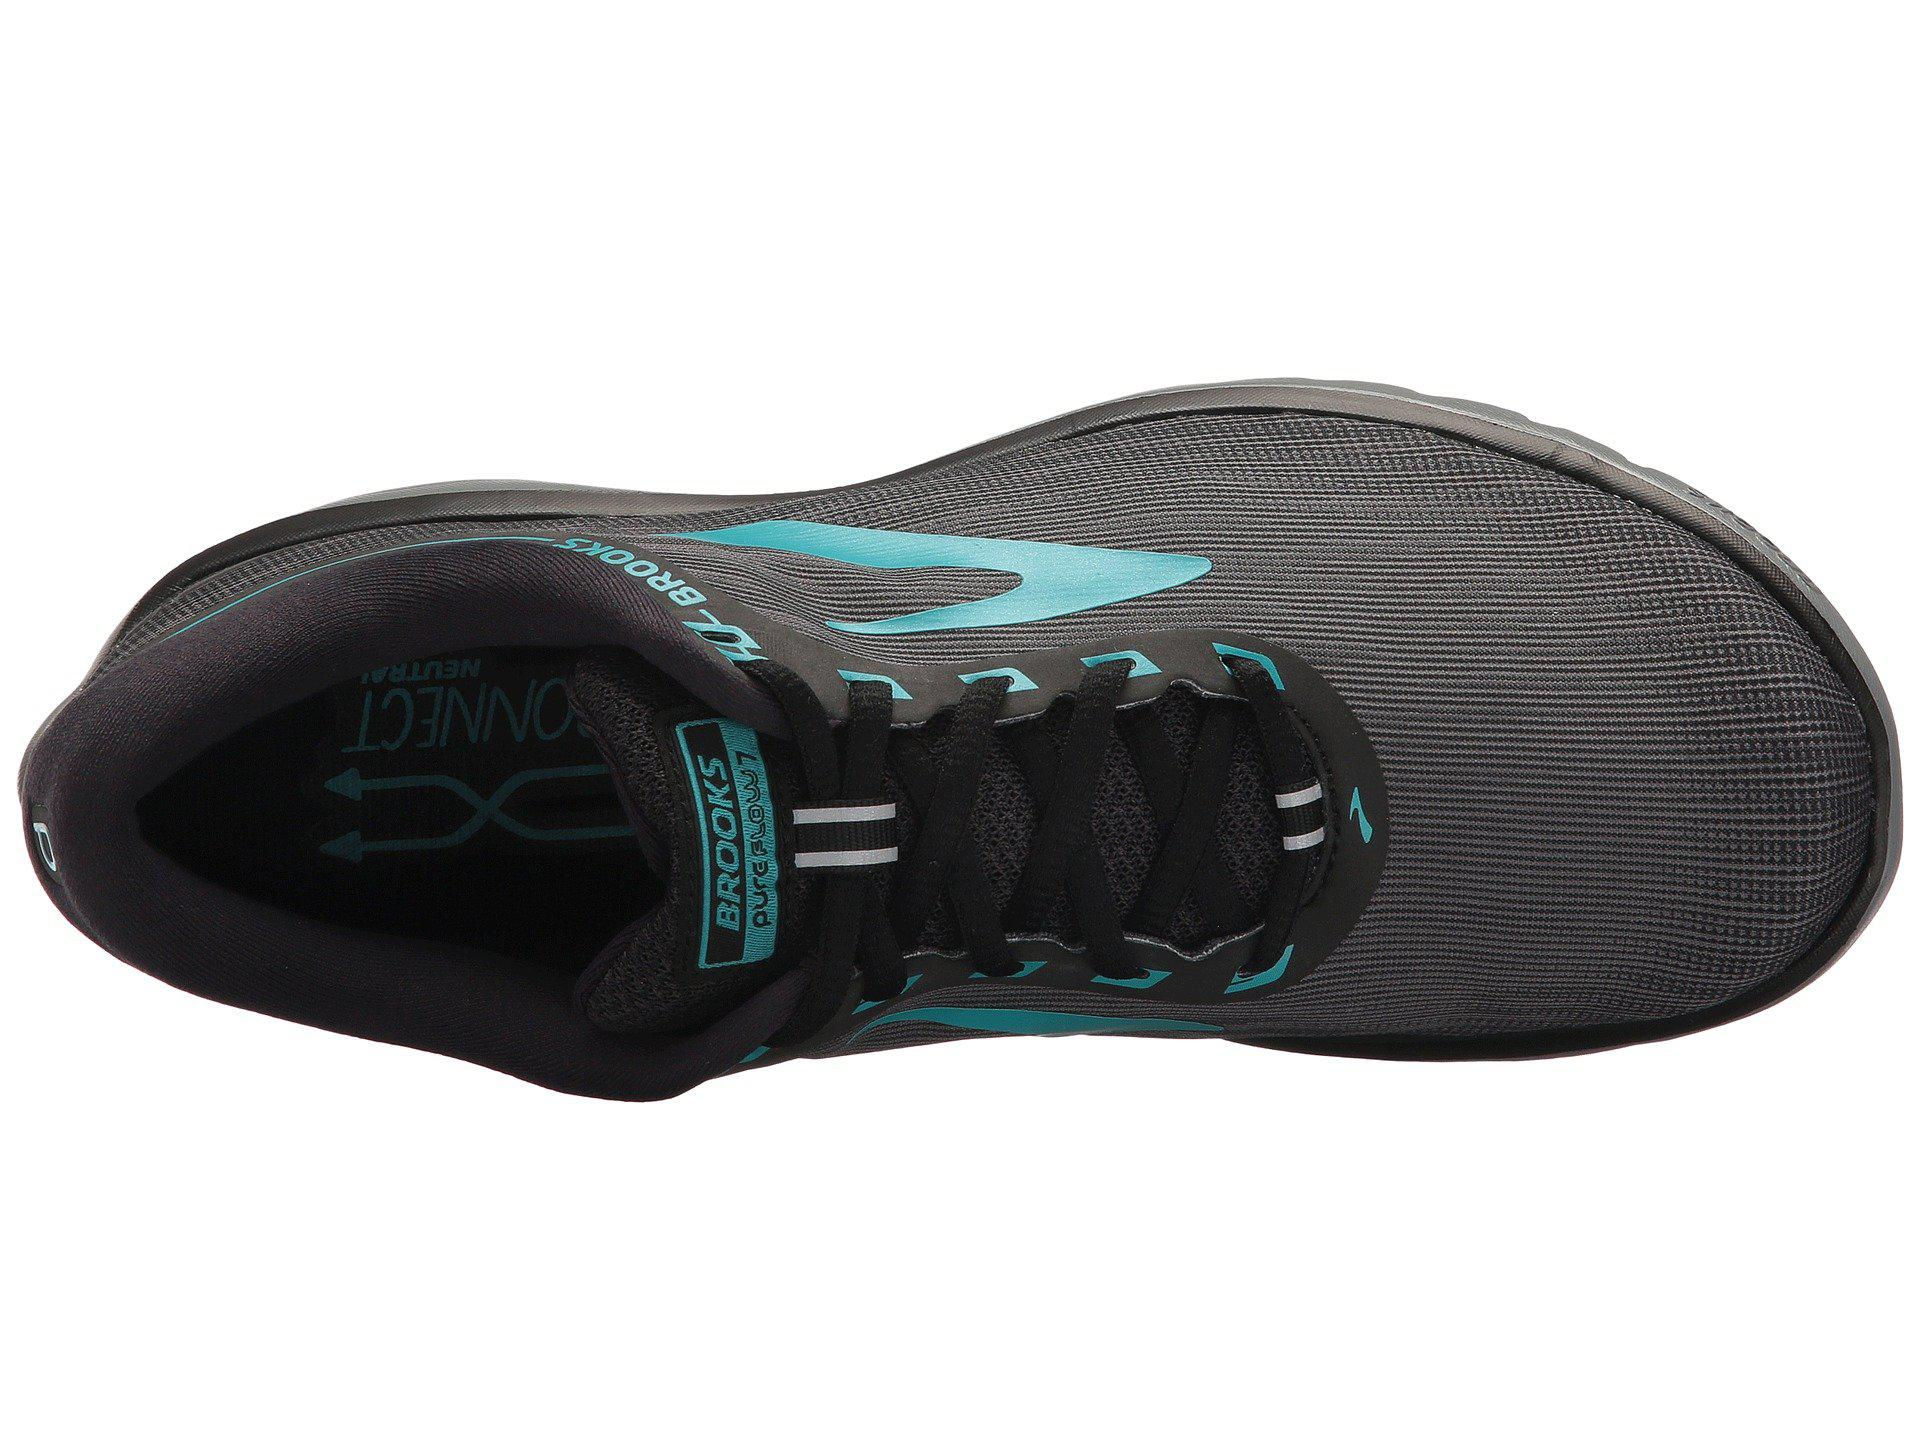 107e022b963 Brooks - Multicolor Pureflow 7 (grey black green) Women s Running Shoes -.  View fullscreen